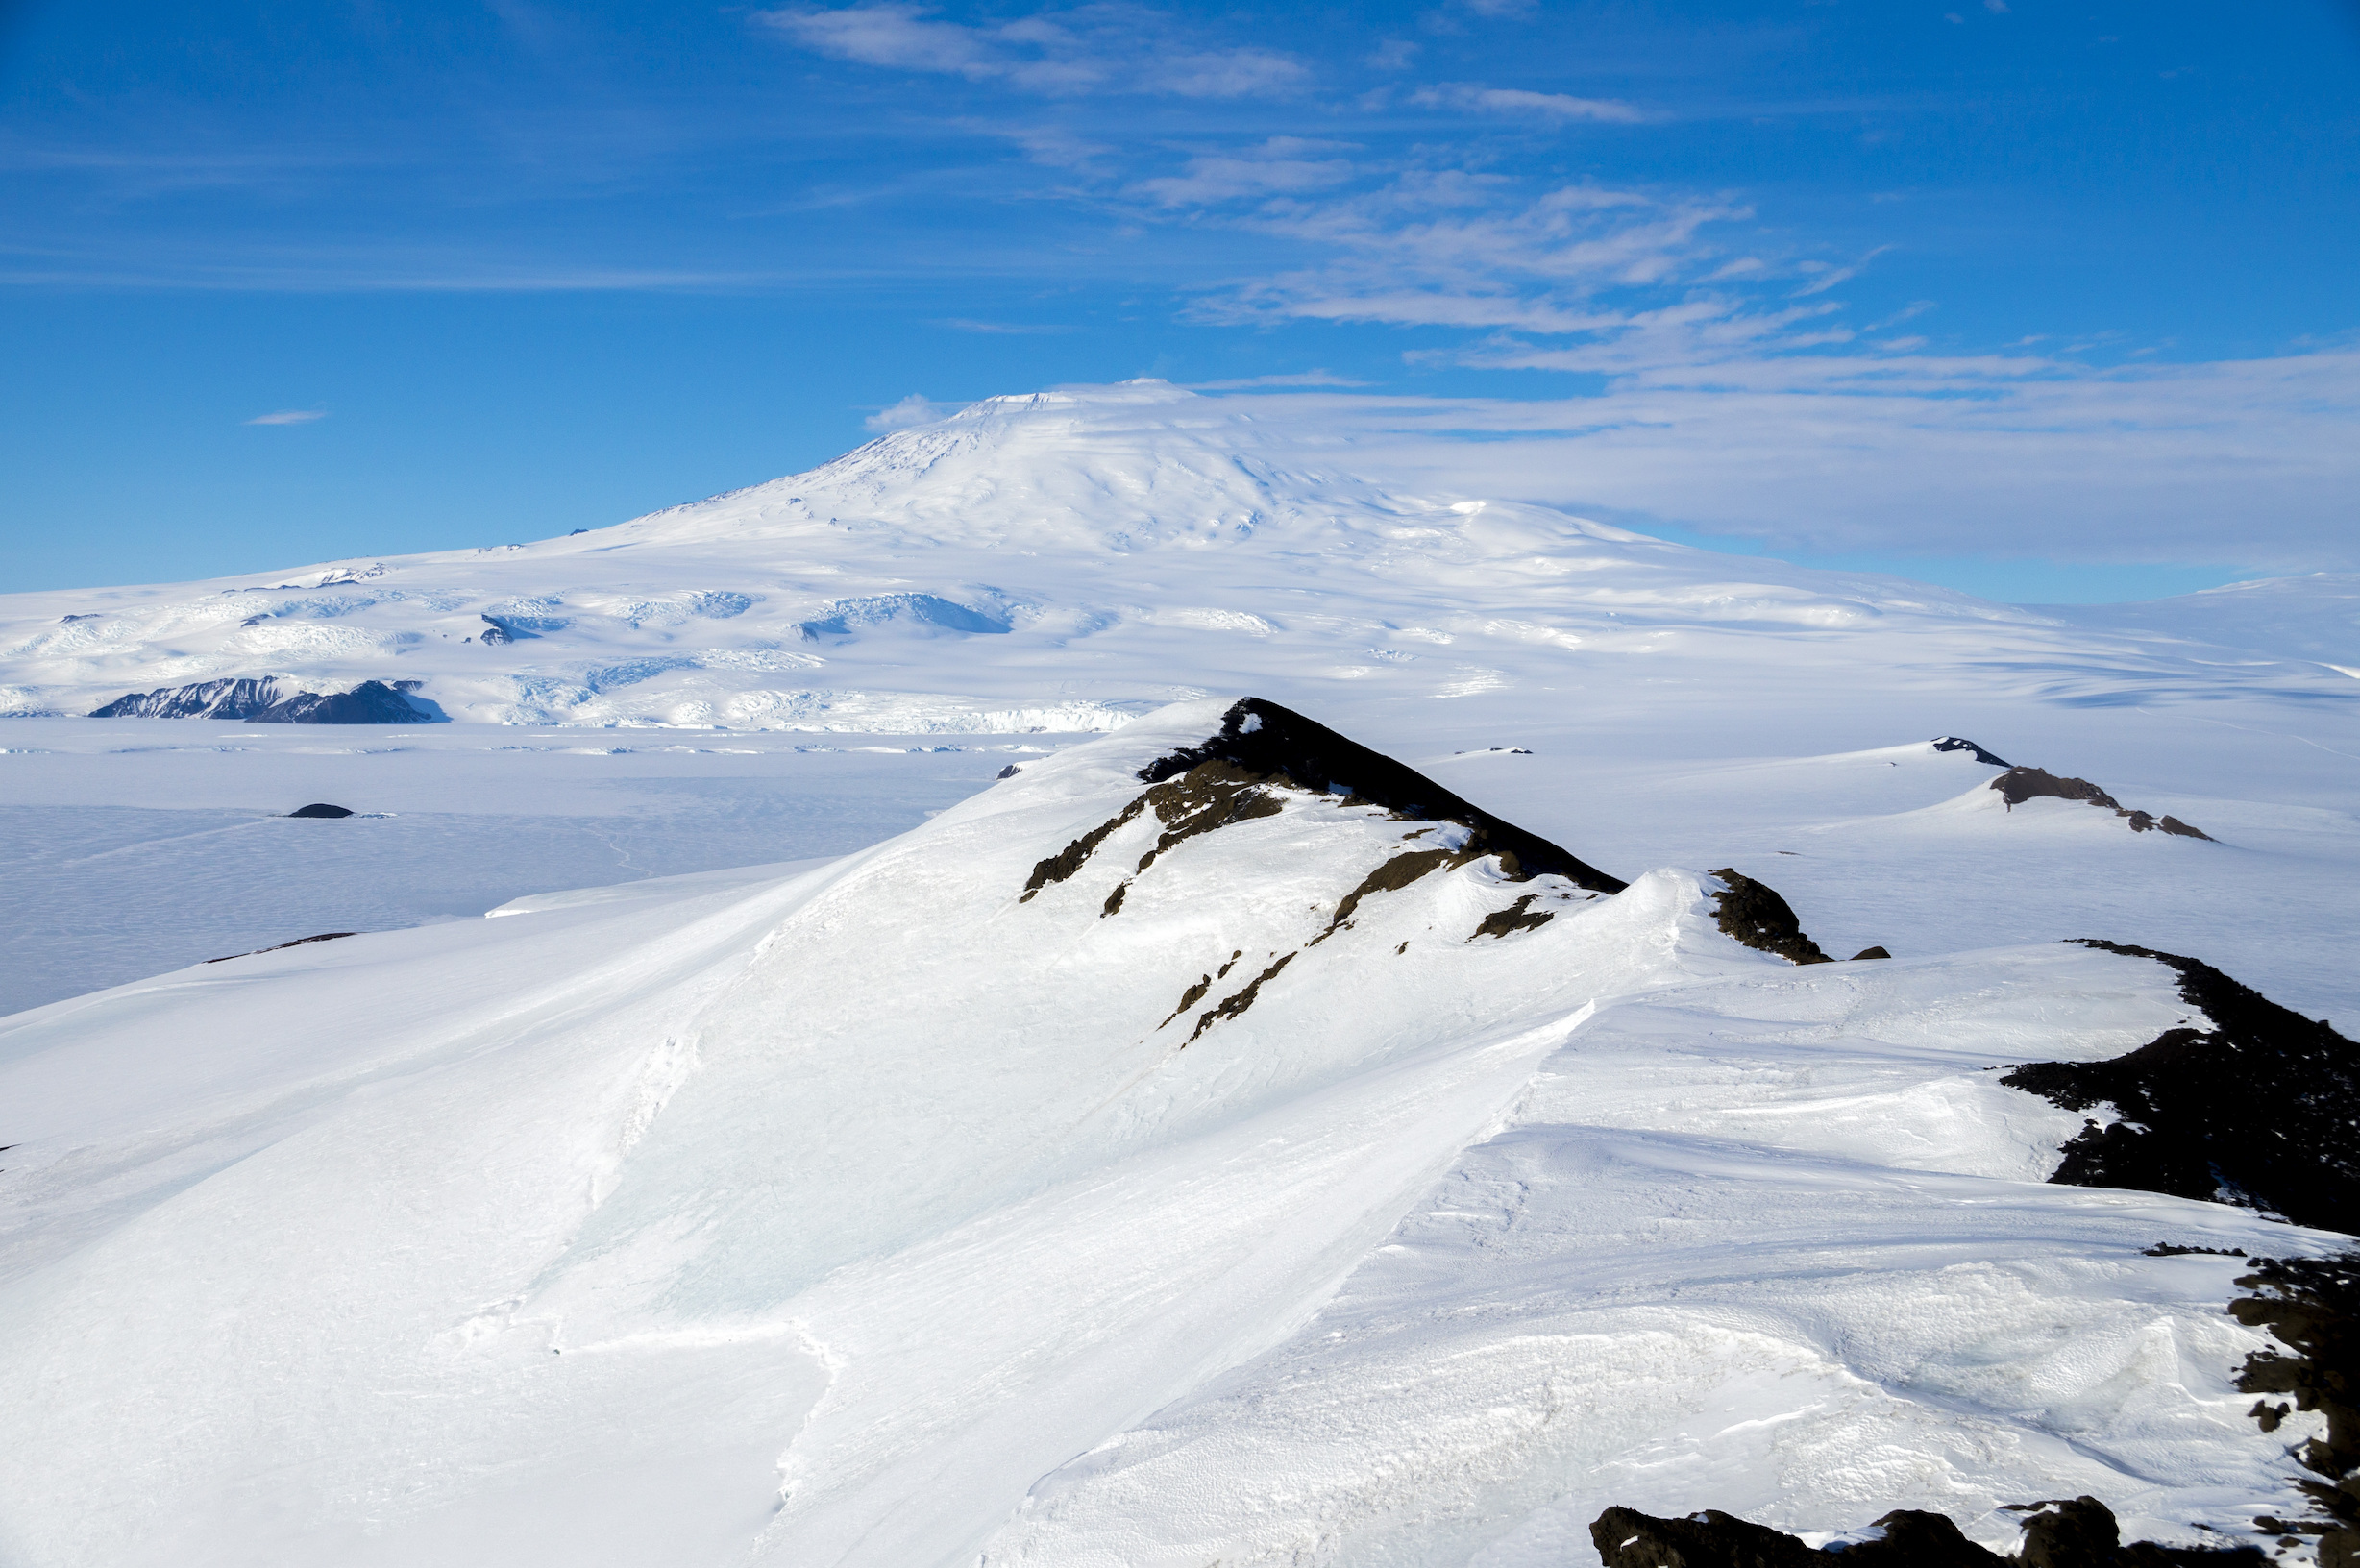 An additional 272 billion tons of snow accumulation in Antarctica over the last two centuries may be helping to offset the amount of sea level rise imposed by climate change.